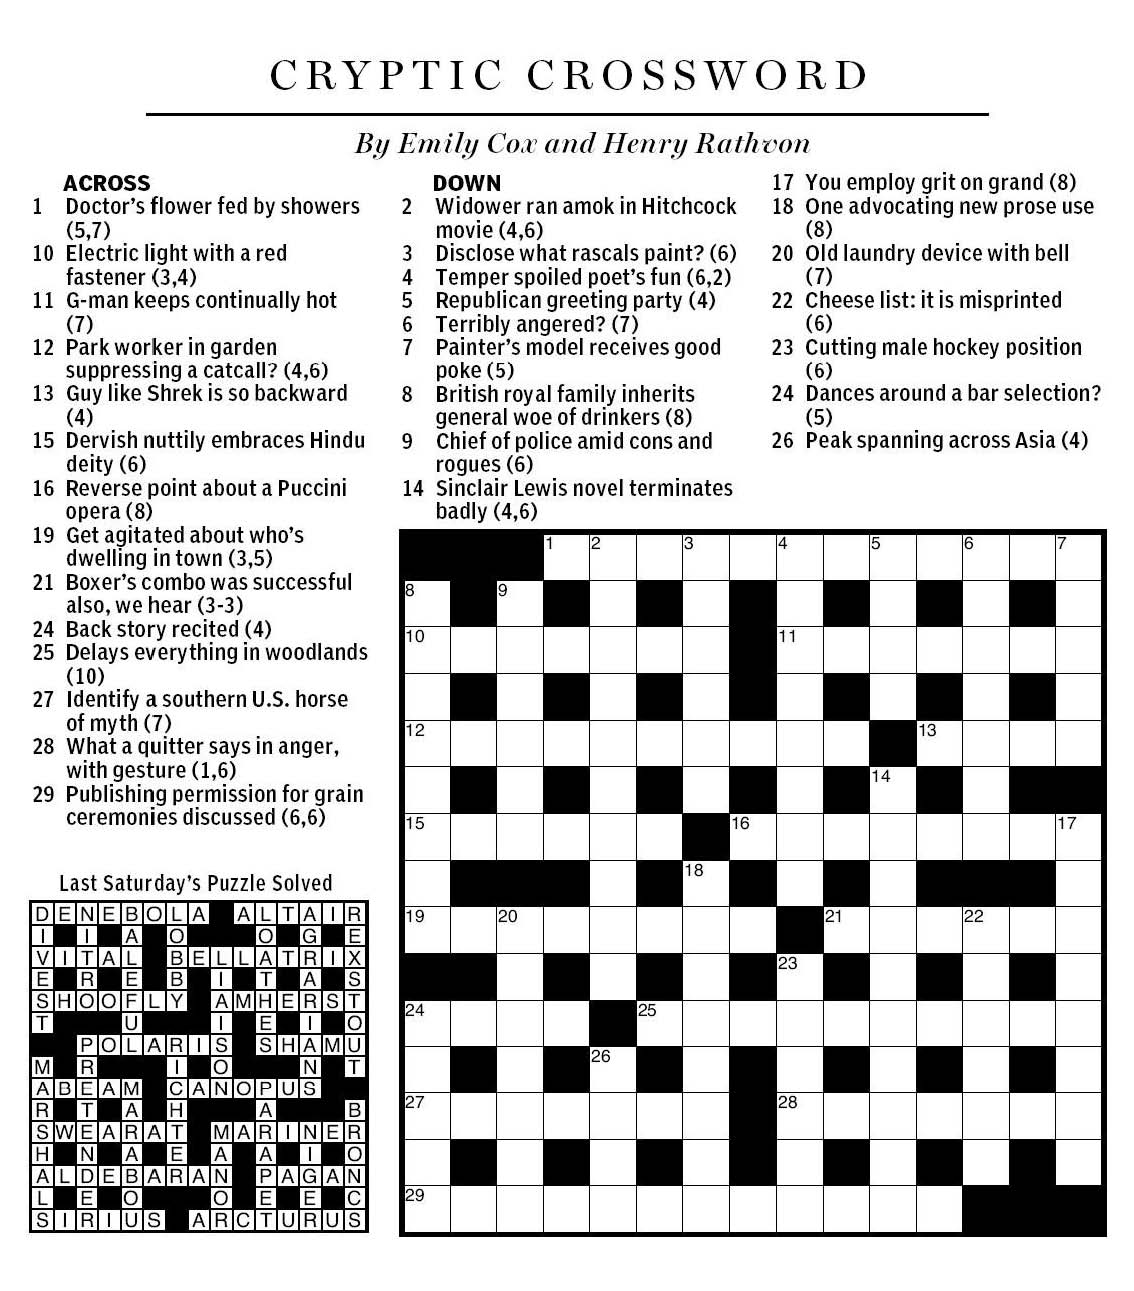 National post cryptic crossword forum june 2013 introduction biocorpaavc